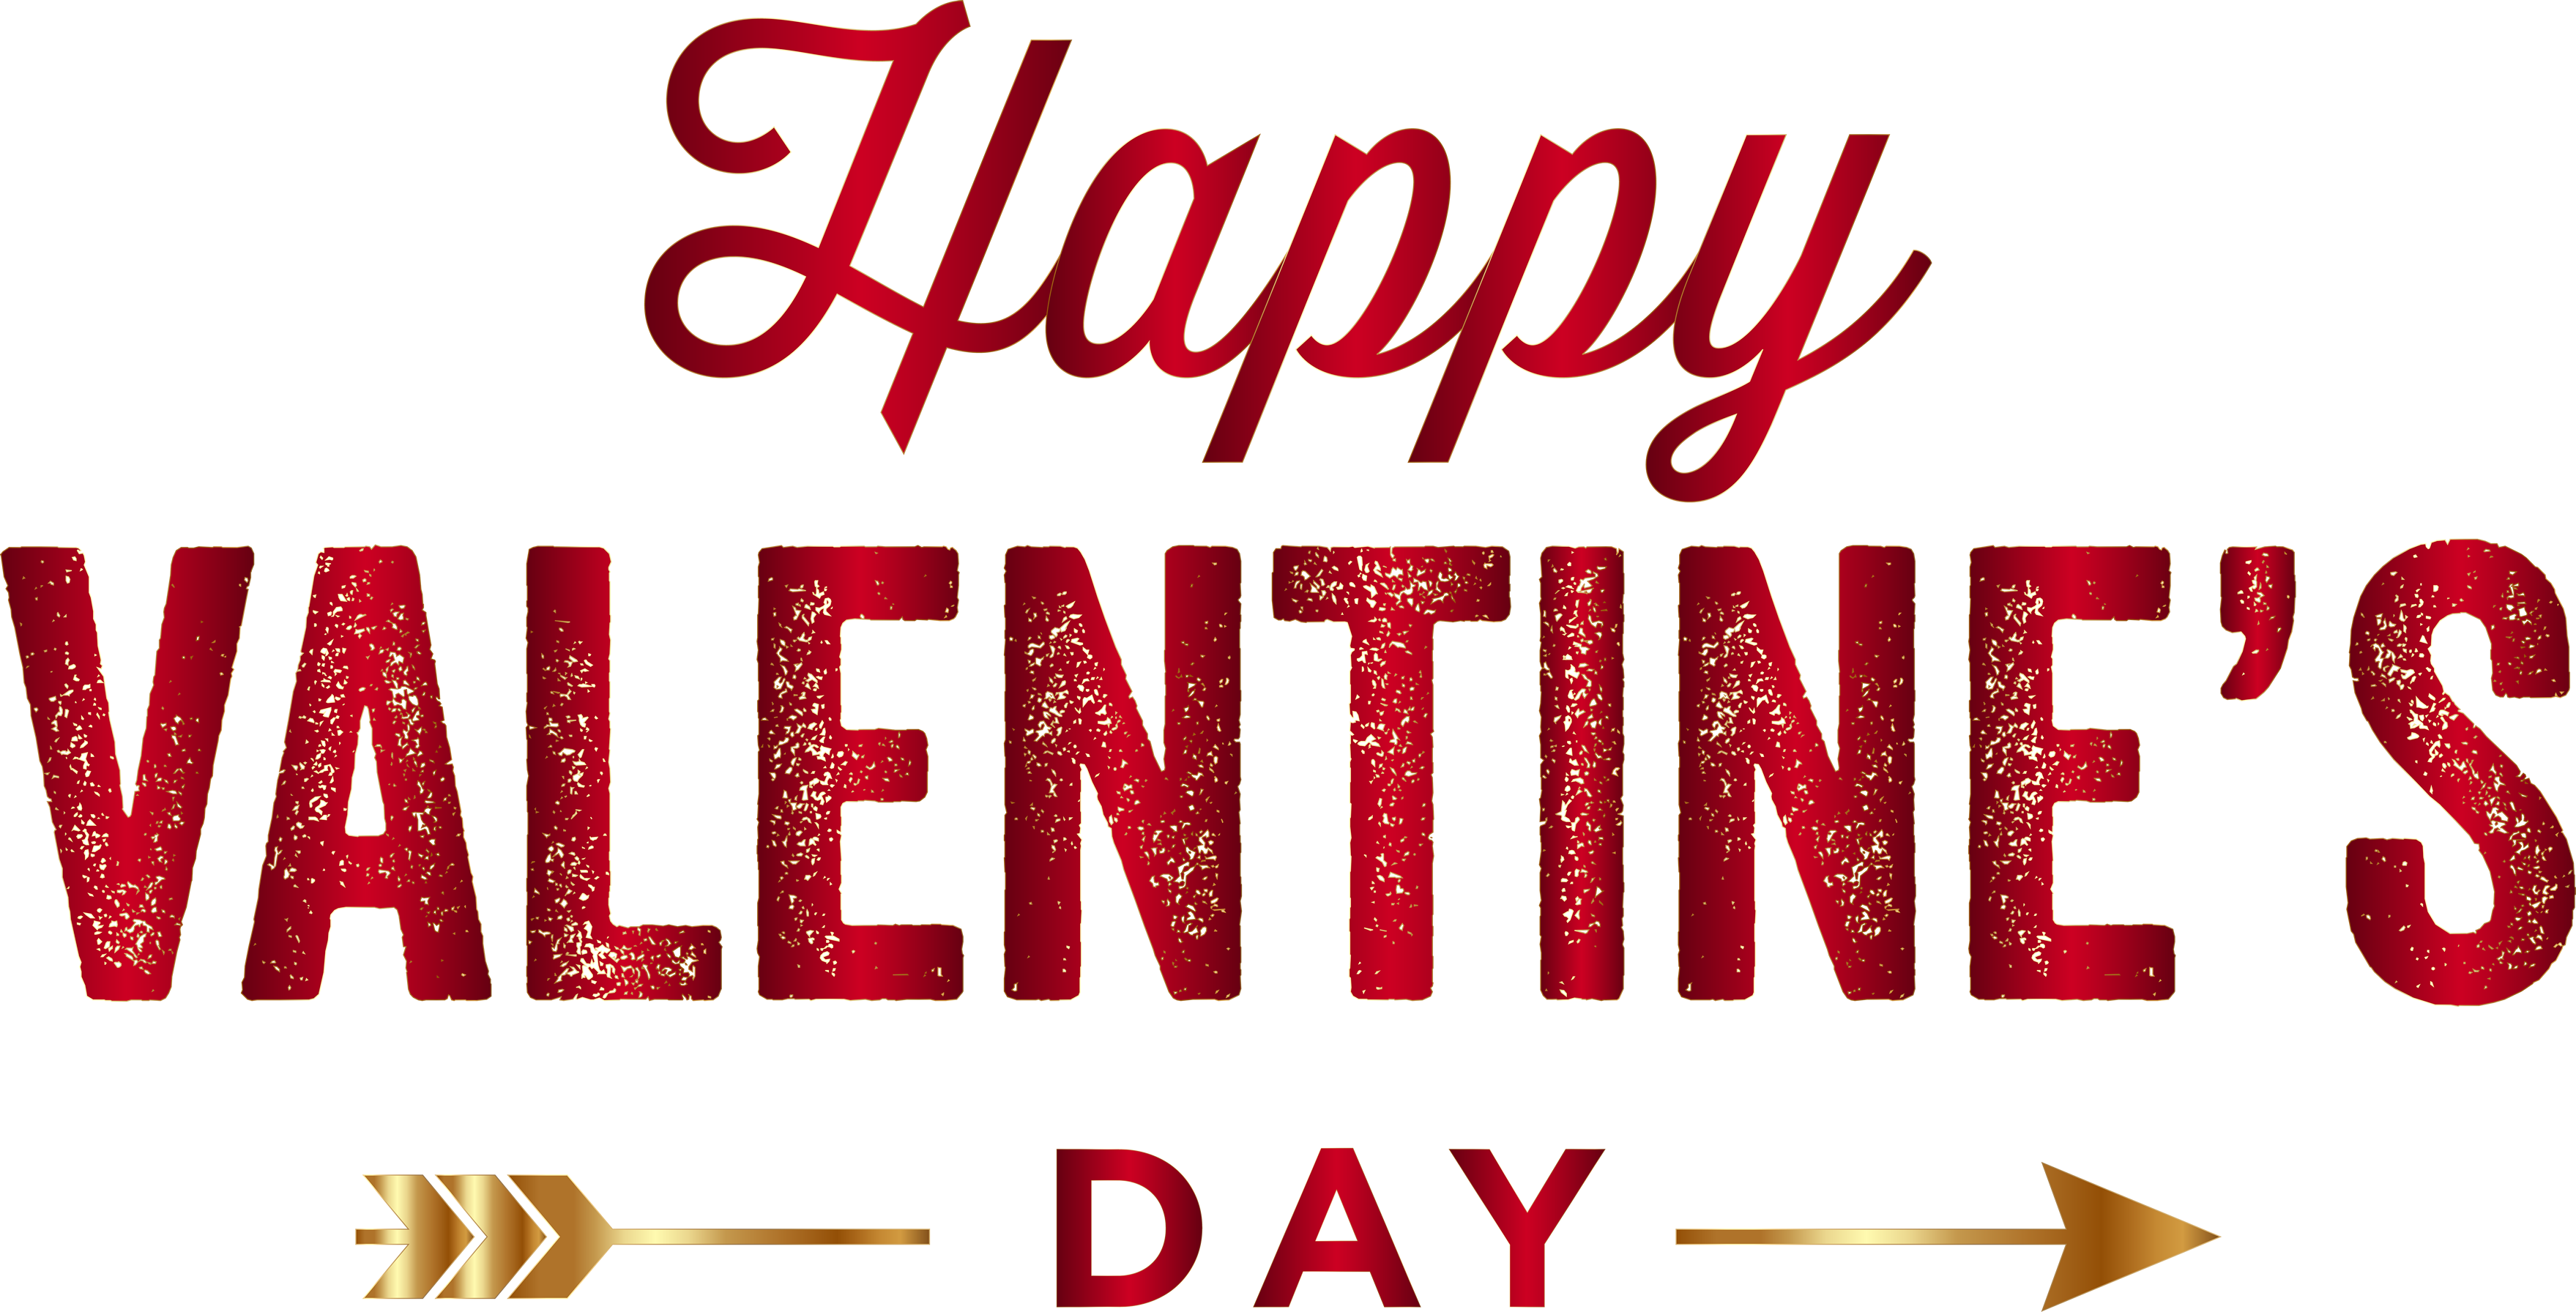 Happy valentines day banner png. Corporate encode clipart to